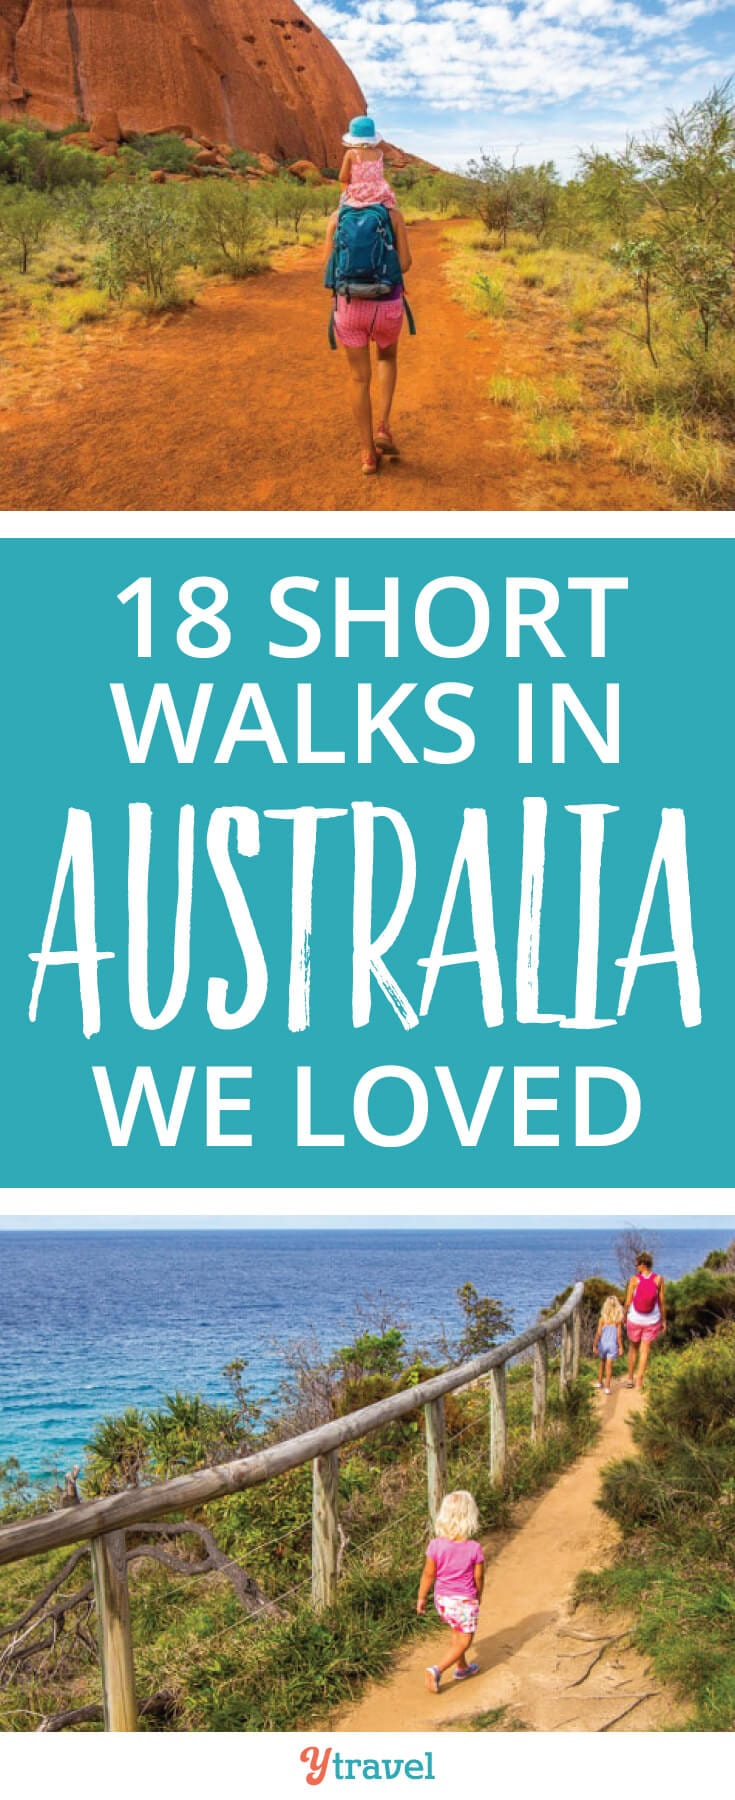 Short walks in Australia to love! Check out these 18 walks or hikes in Australia to do. Beautiful scenery in all seasons and family friendly too!